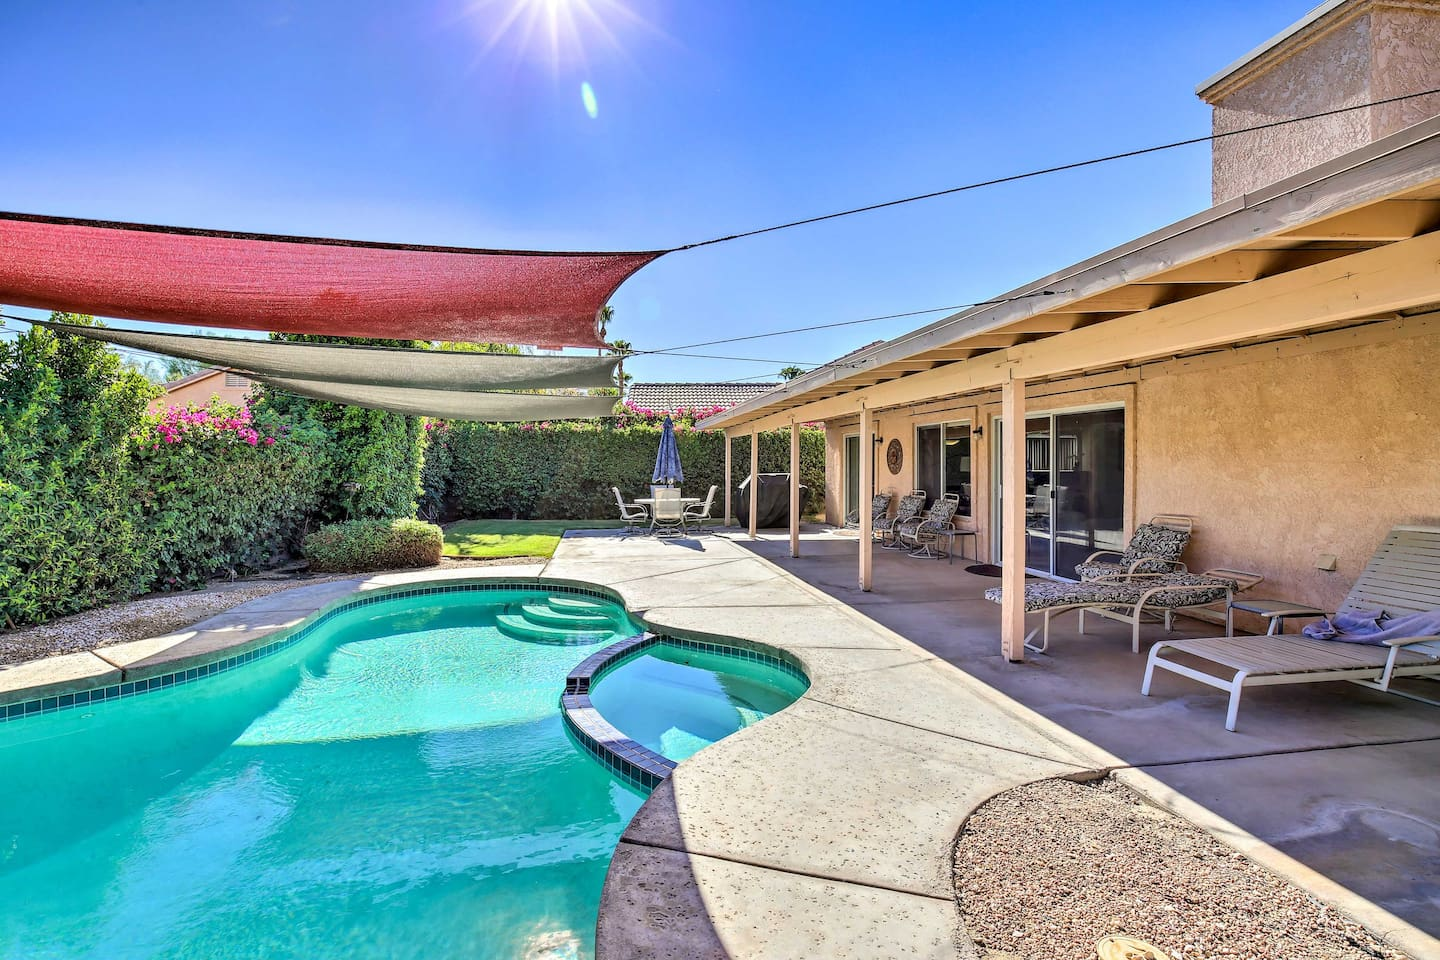 Sunshine and good times await at this 3-bedroom, 2-bath house in La Quinta!